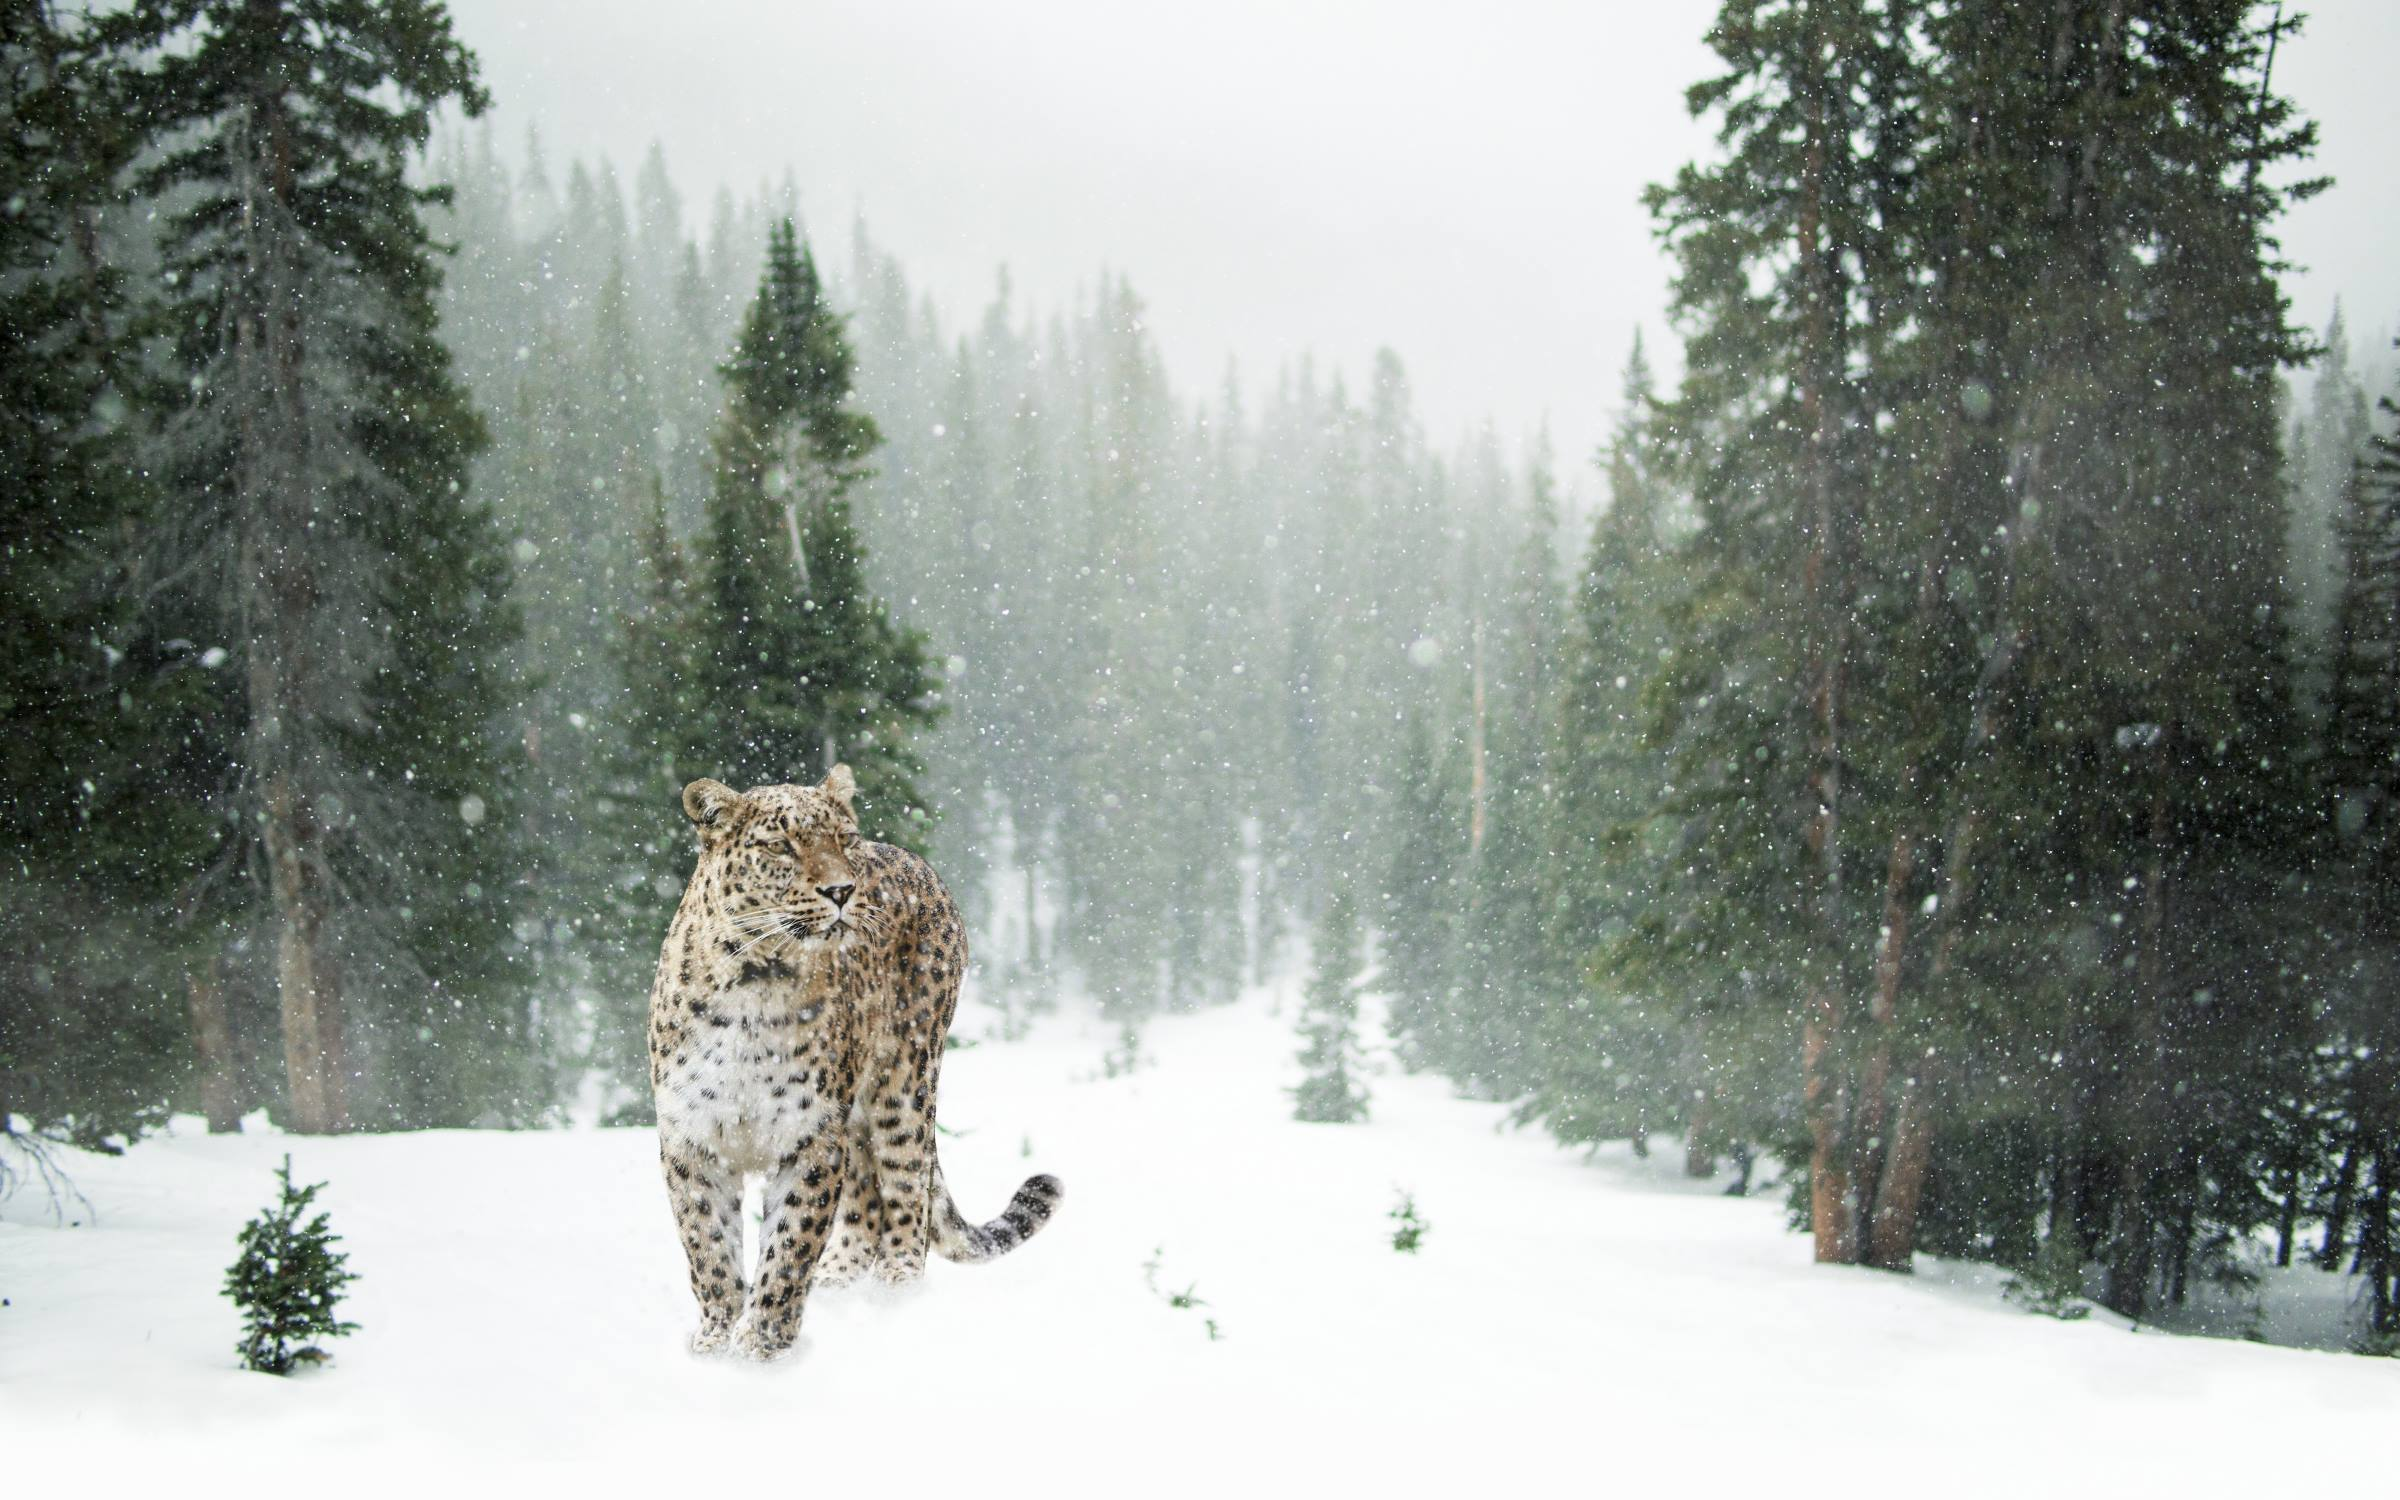 winter snow leopard animal trees forest